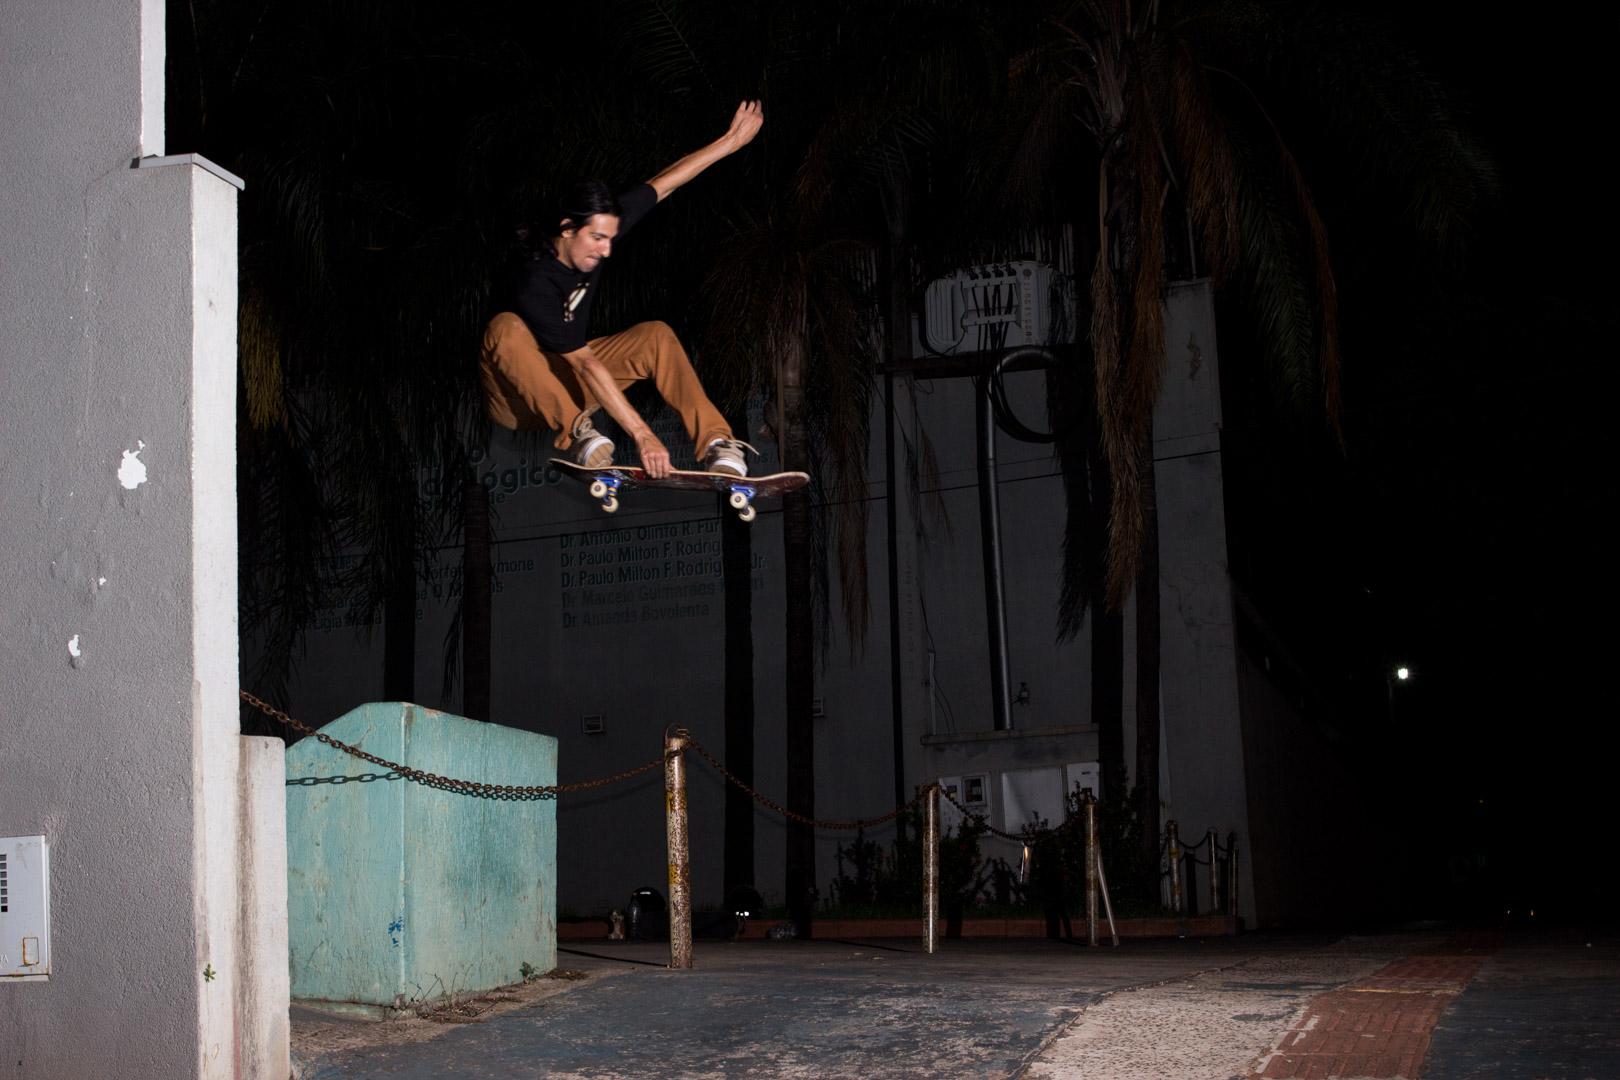 Vitor Cantier Ollie Indy foto: Elio Angelo